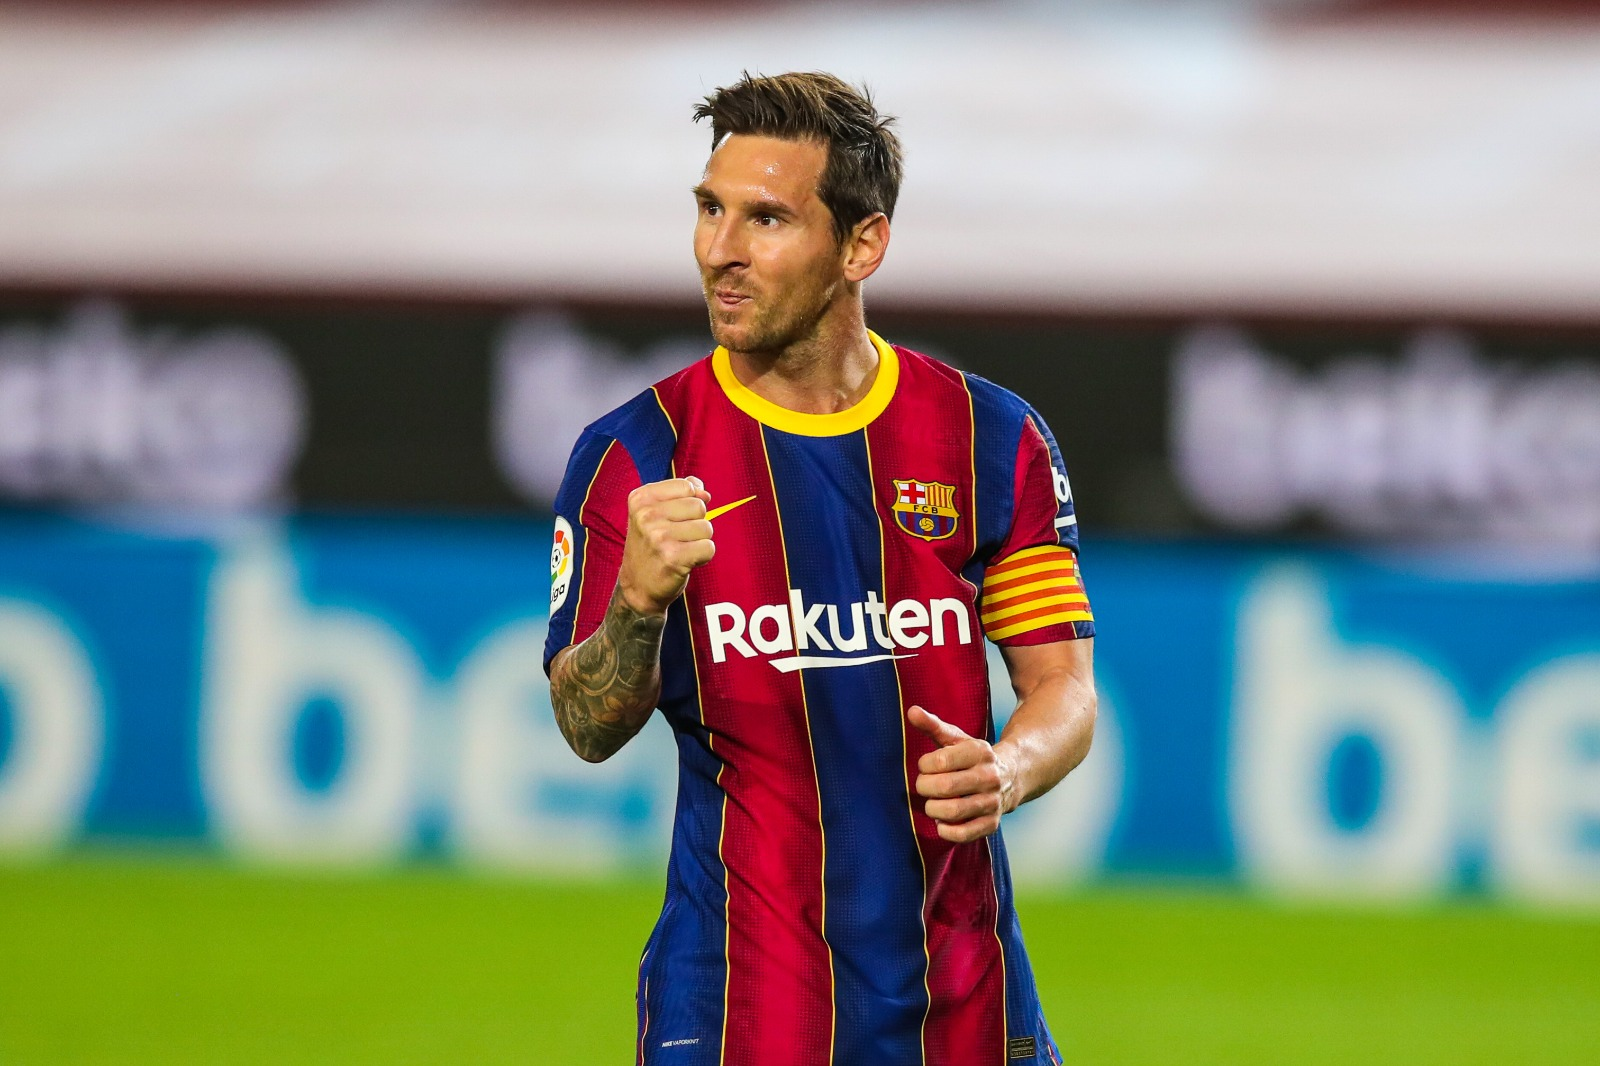 Lionel Messi accepts criticism from Barcelona boss Koeman - Football Espana